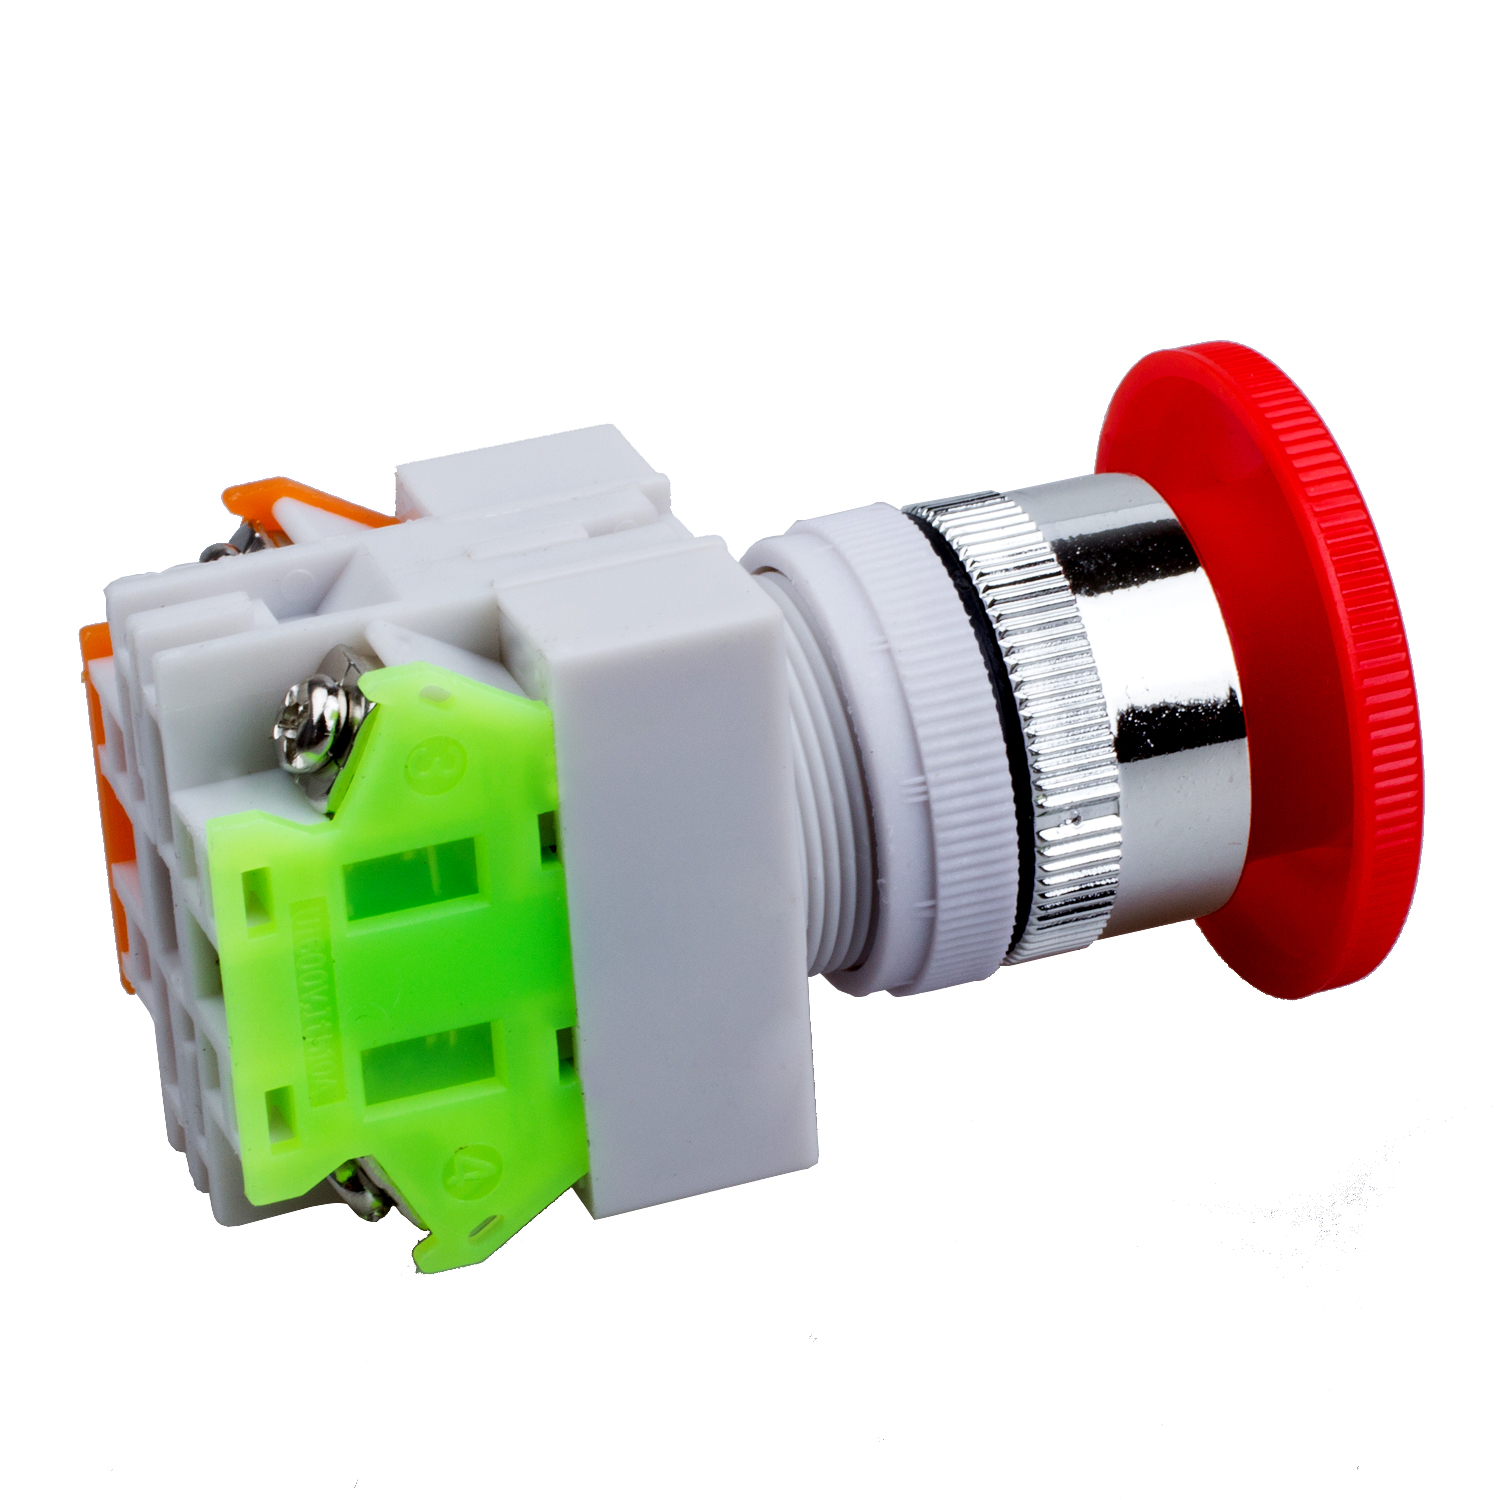 LHLL Red Mushroom Cap 1NO 1NC DPST Emergency Stop Push Button Switch ...